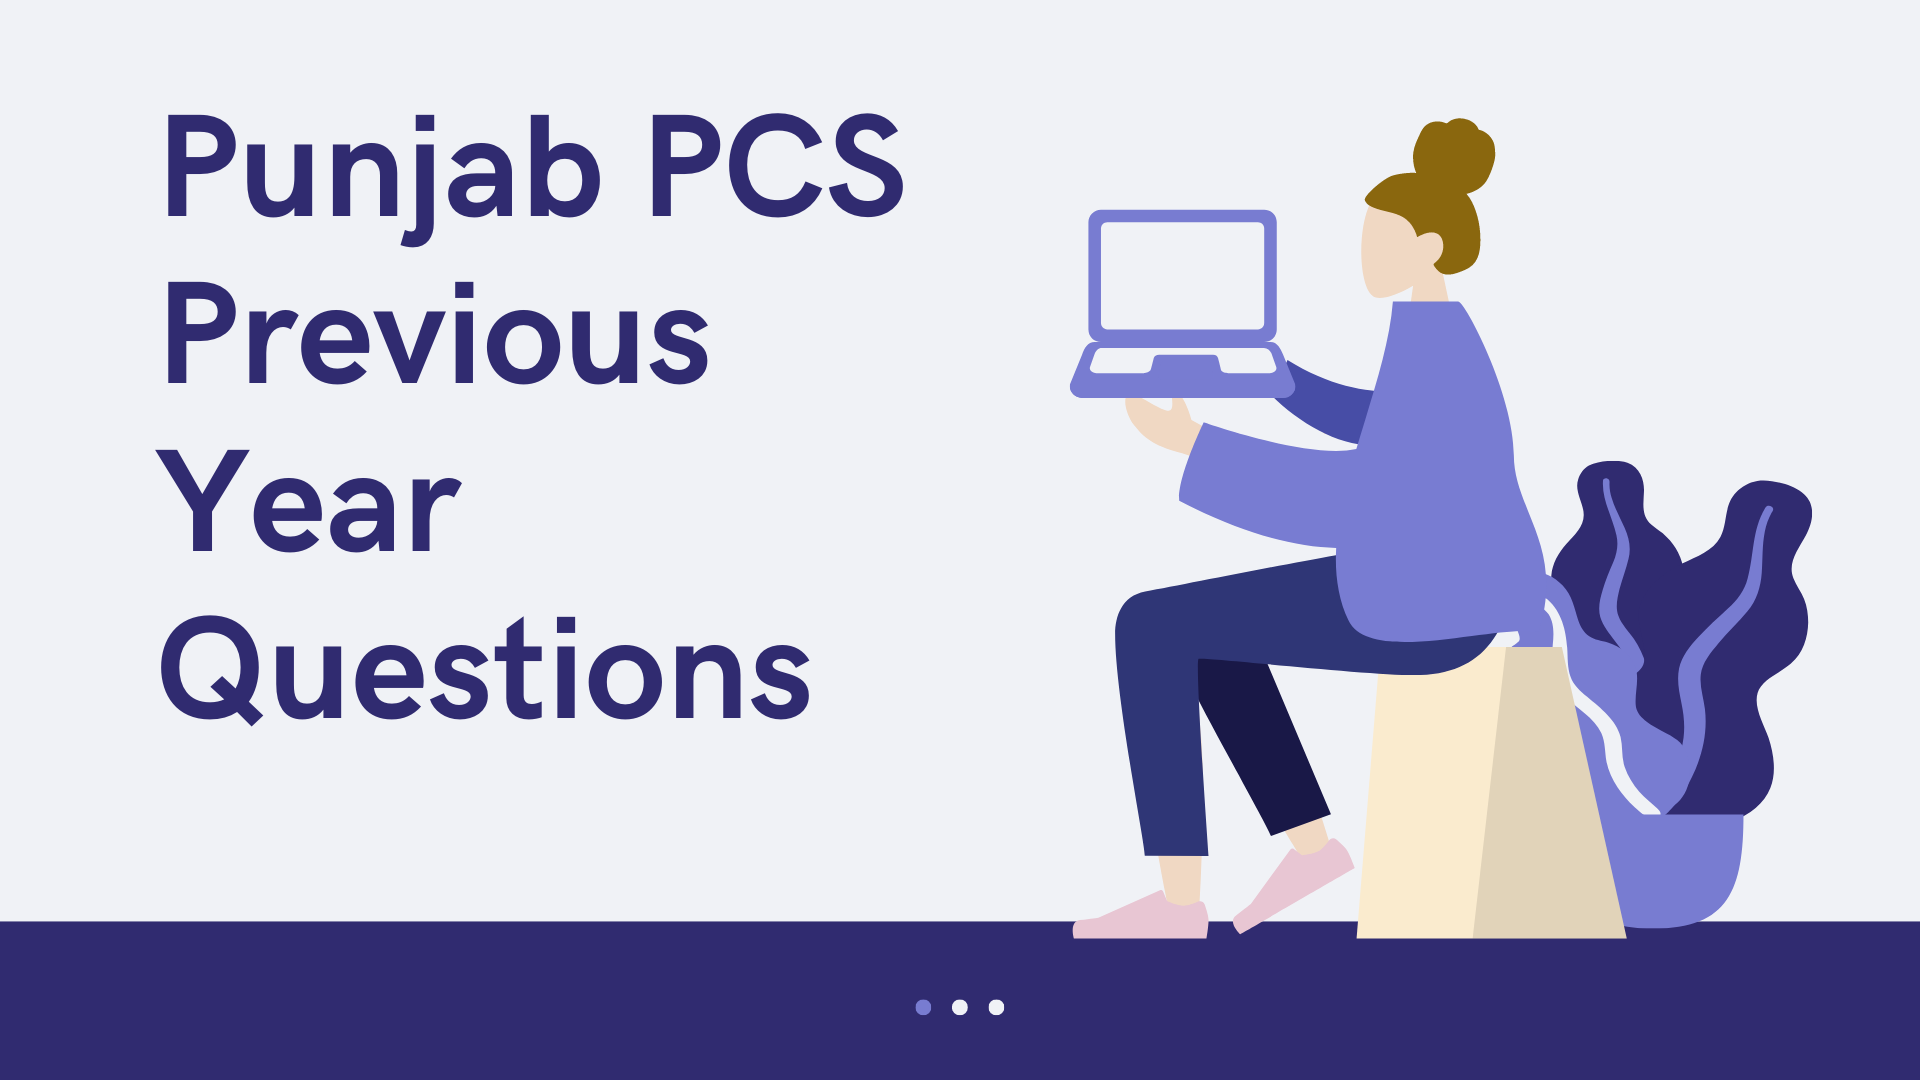 Punjab PCS 2021 Previous Year questions: Part 3